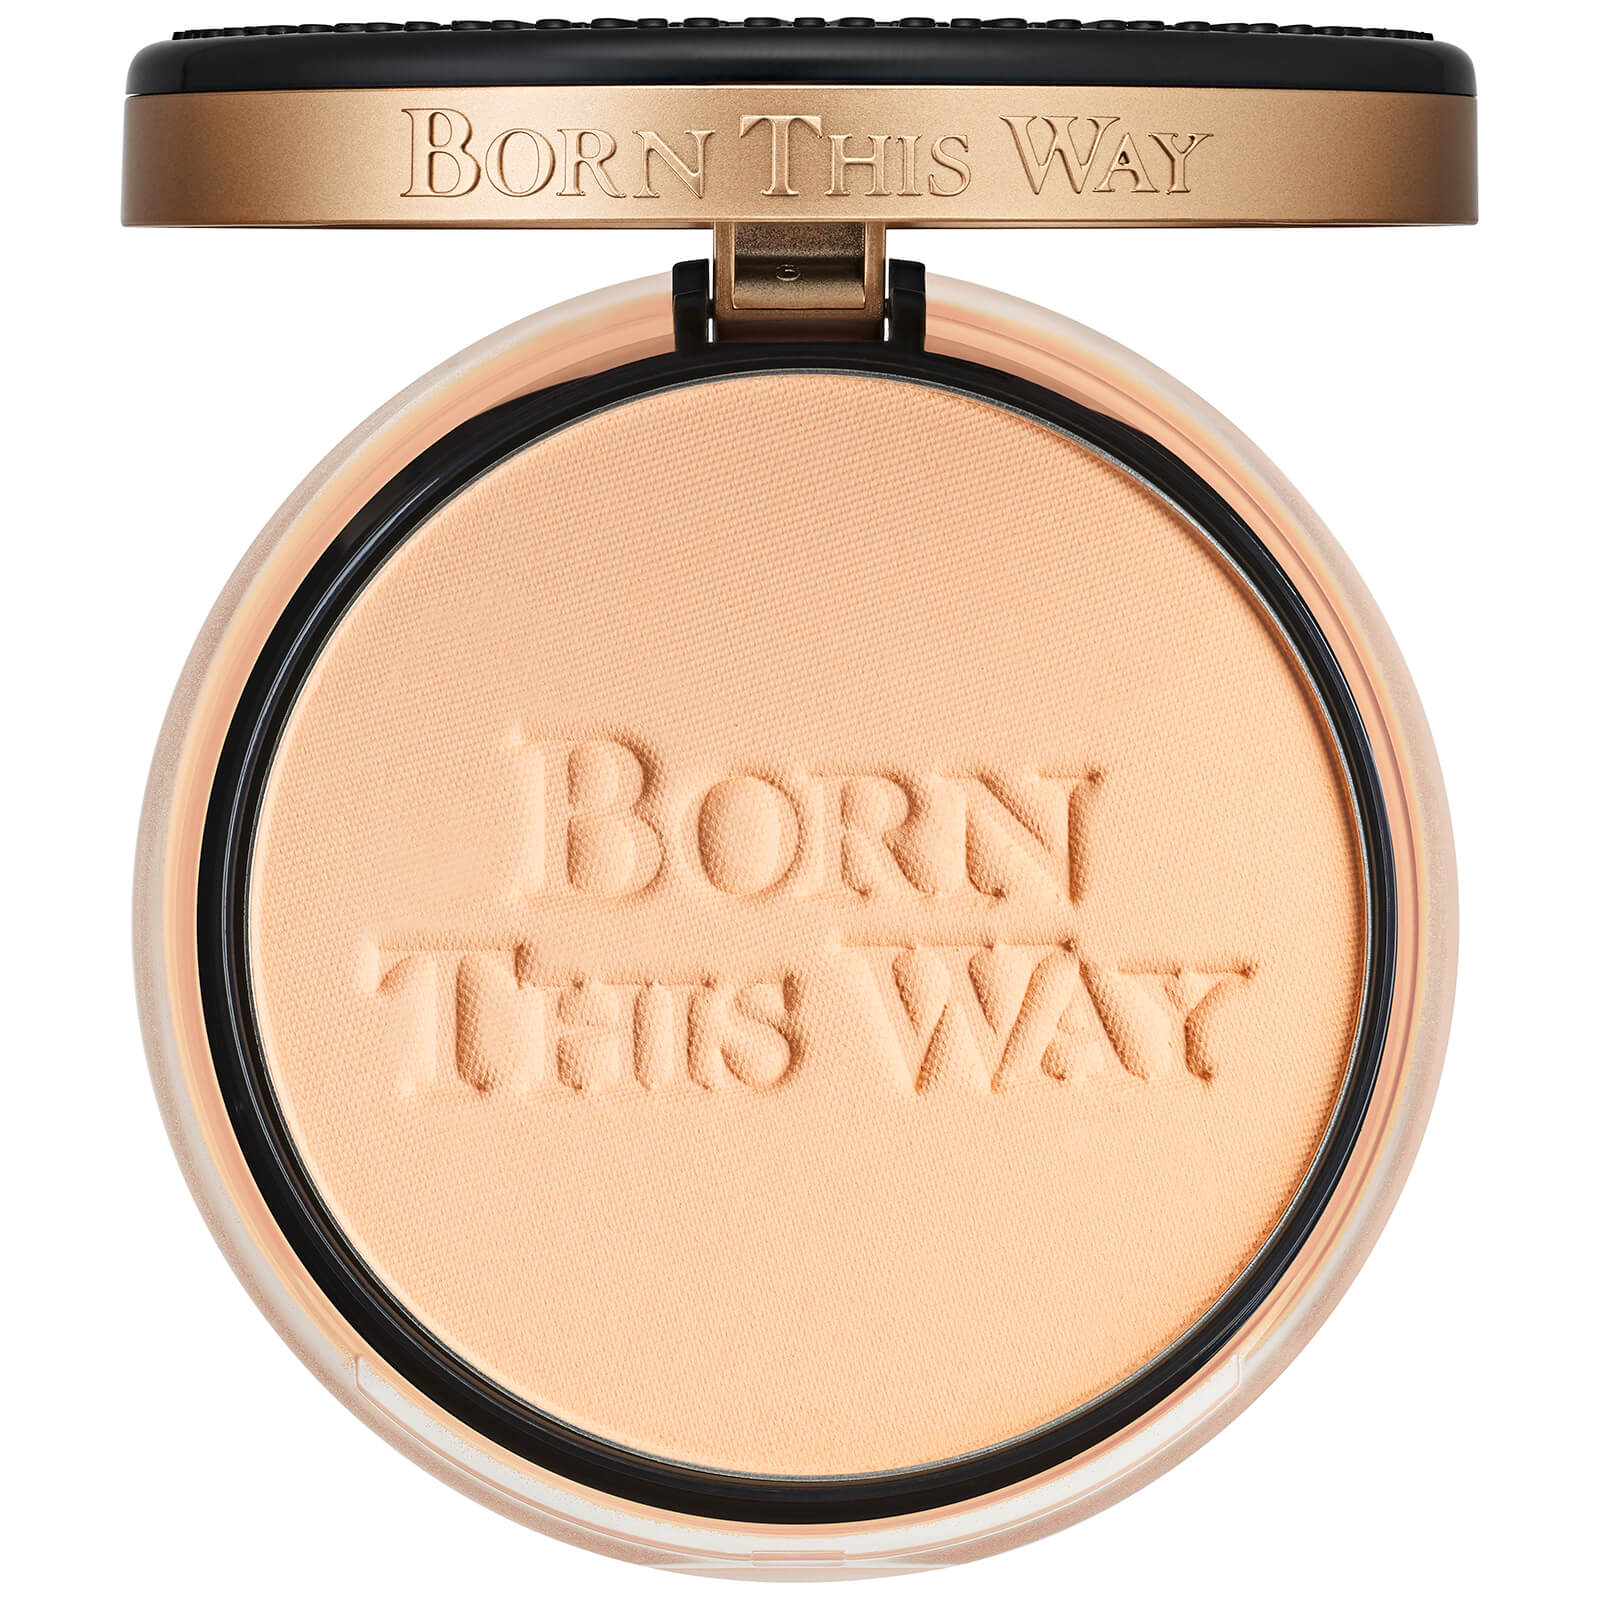 Too Faced Born This Way Multi-Use Complexion Powder (Various Shades) - Seashell